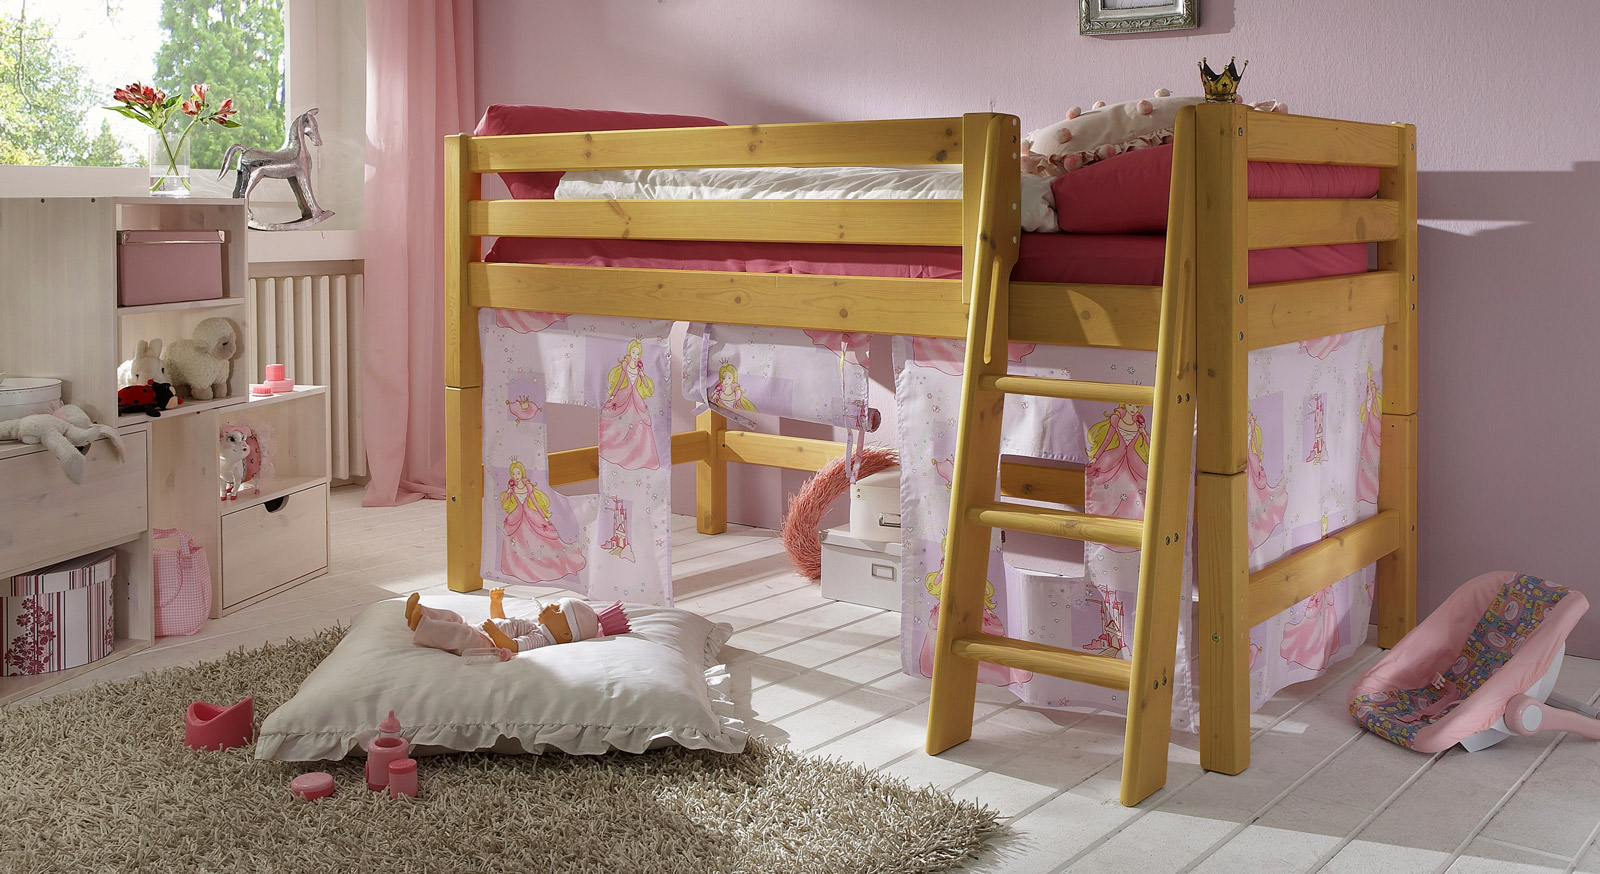 kinder hochbett prinzessin g nstig kaufen. Black Bedroom Furniture Sets. Home Design Ideas